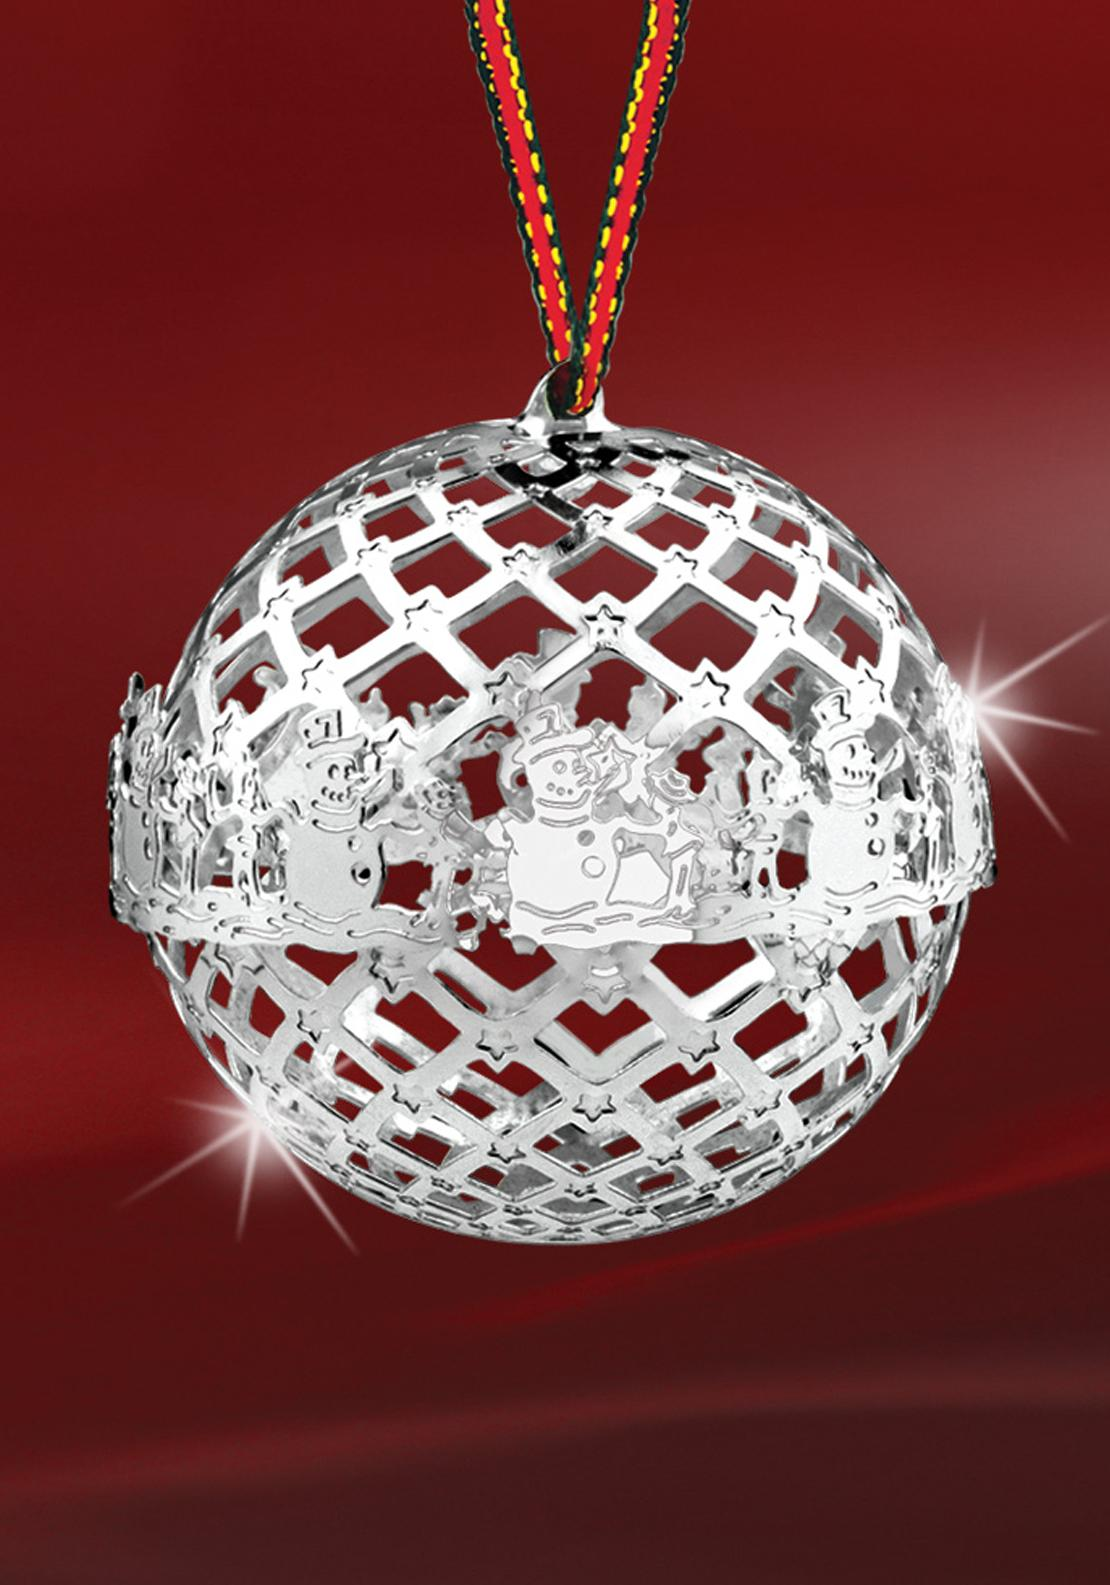 Newbridge Christmas Ball Hanging Decoration